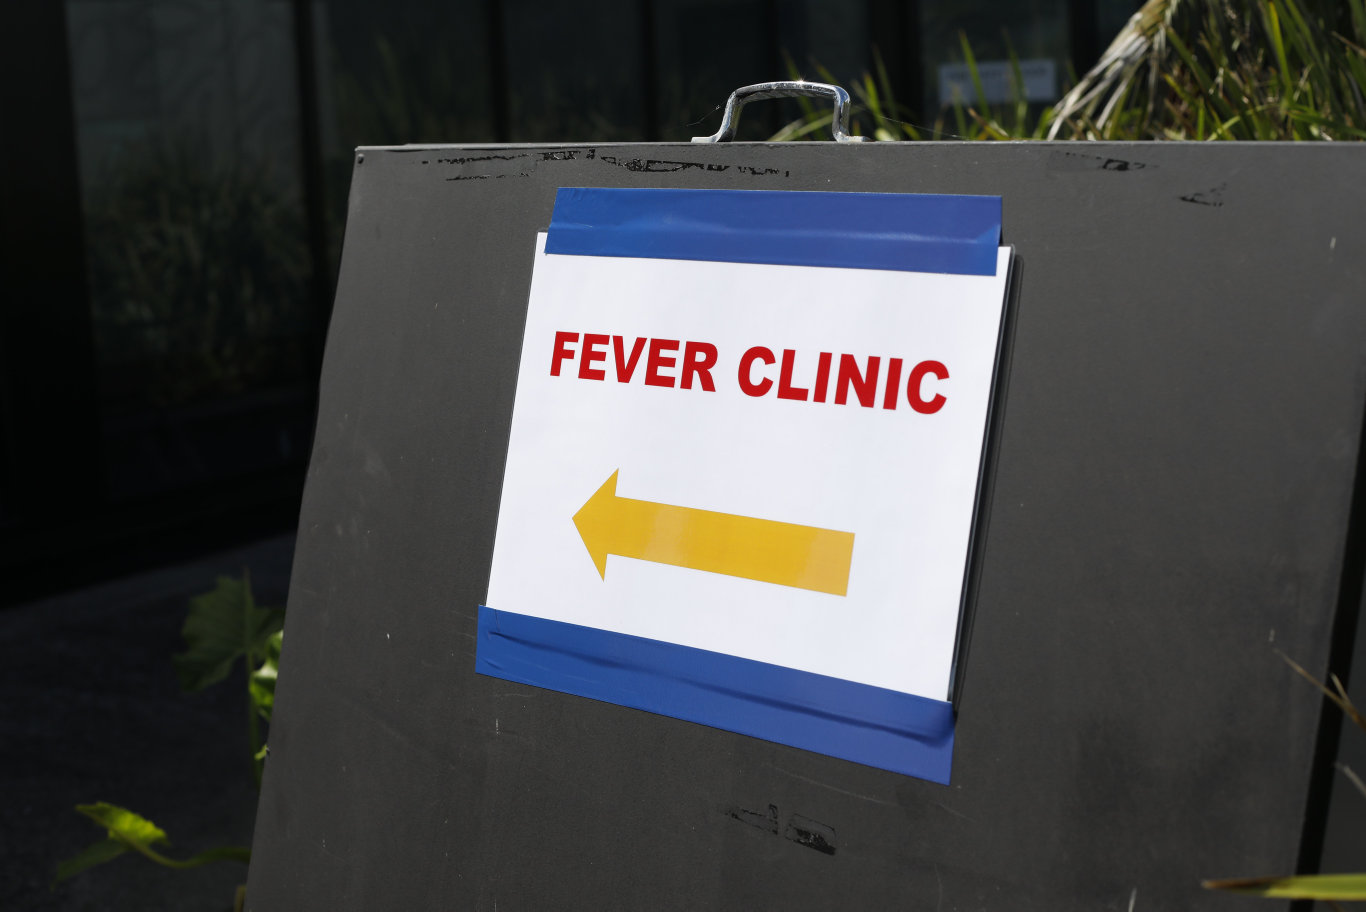 A COVID-19 clinic has been set up at Byron Central Hospital.